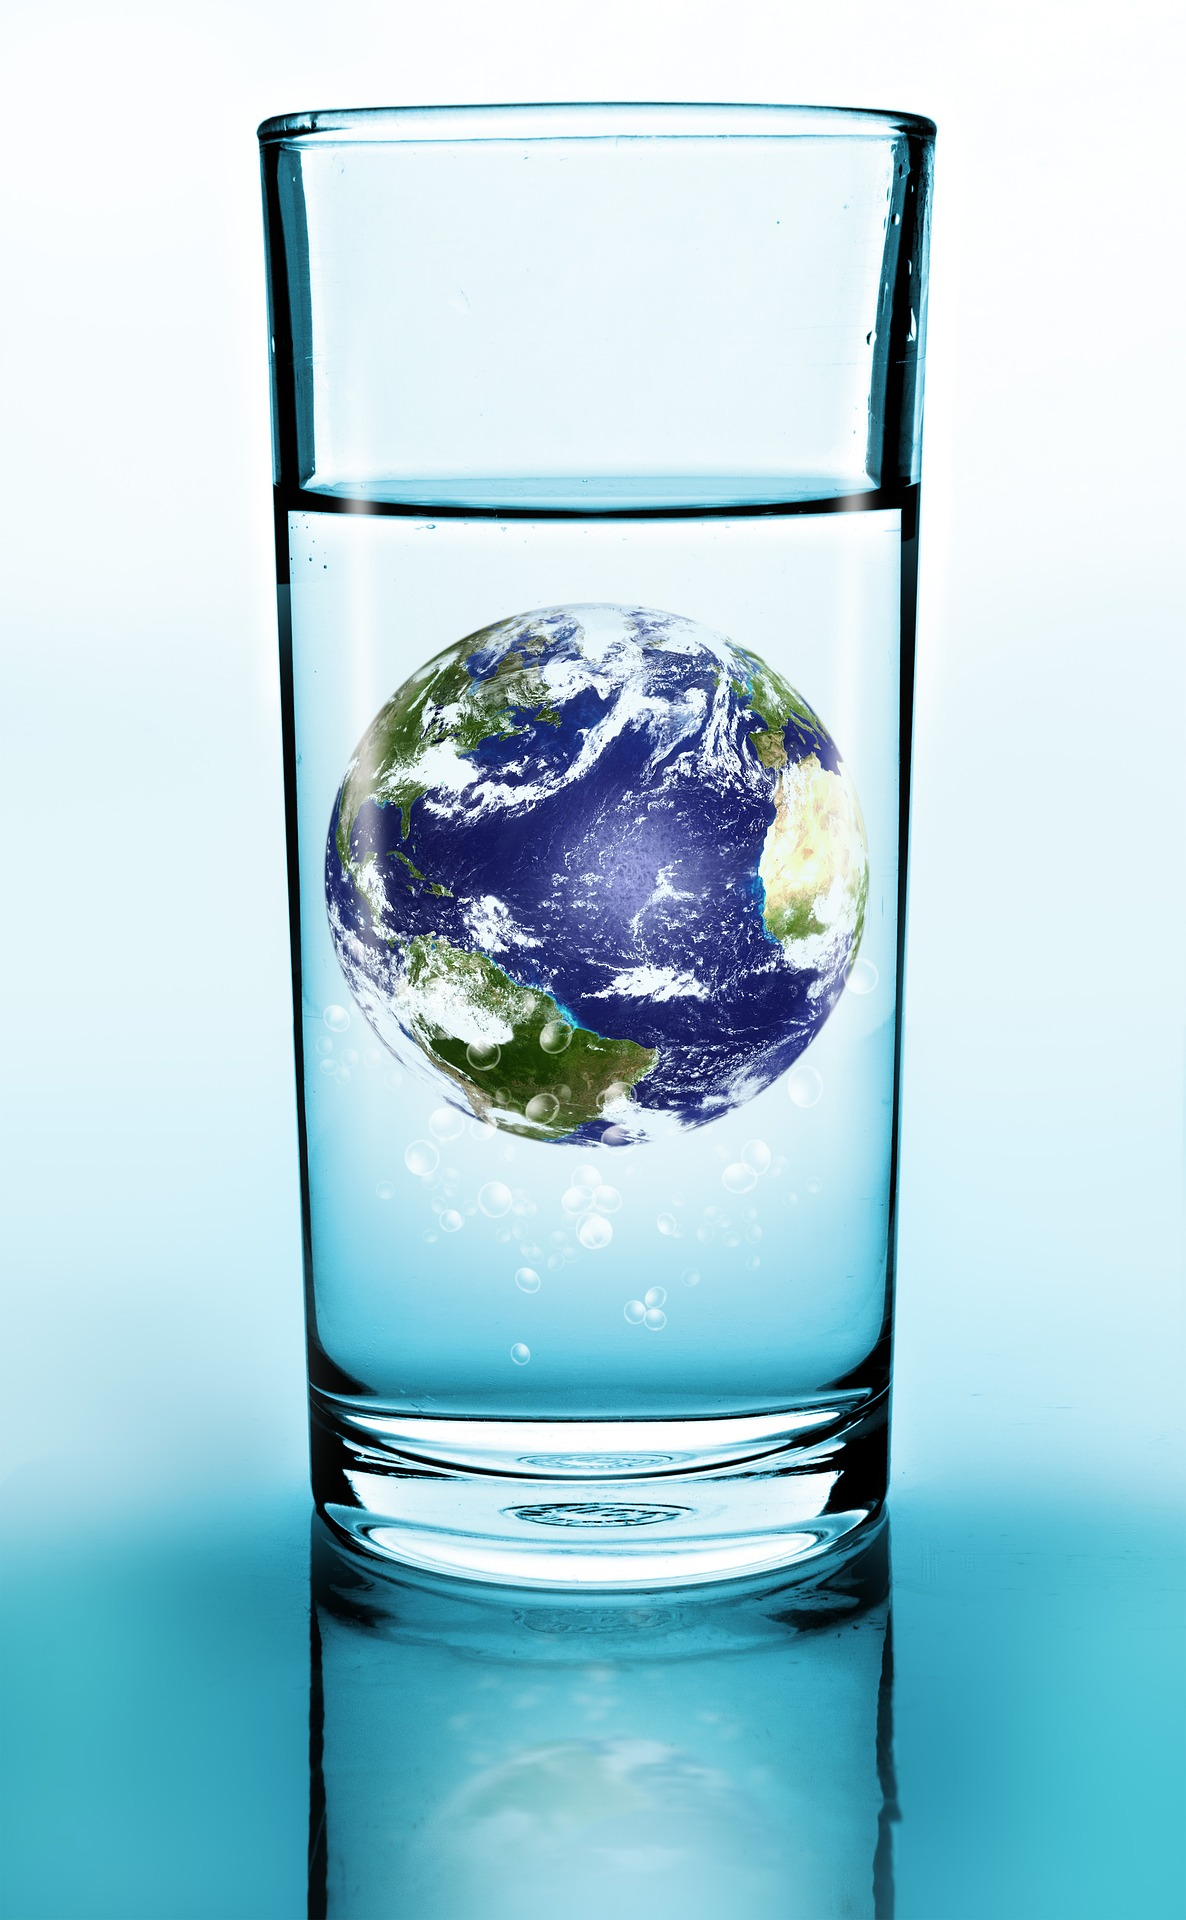 Although our planet is primarily covered in water, very little of it is available for human use.